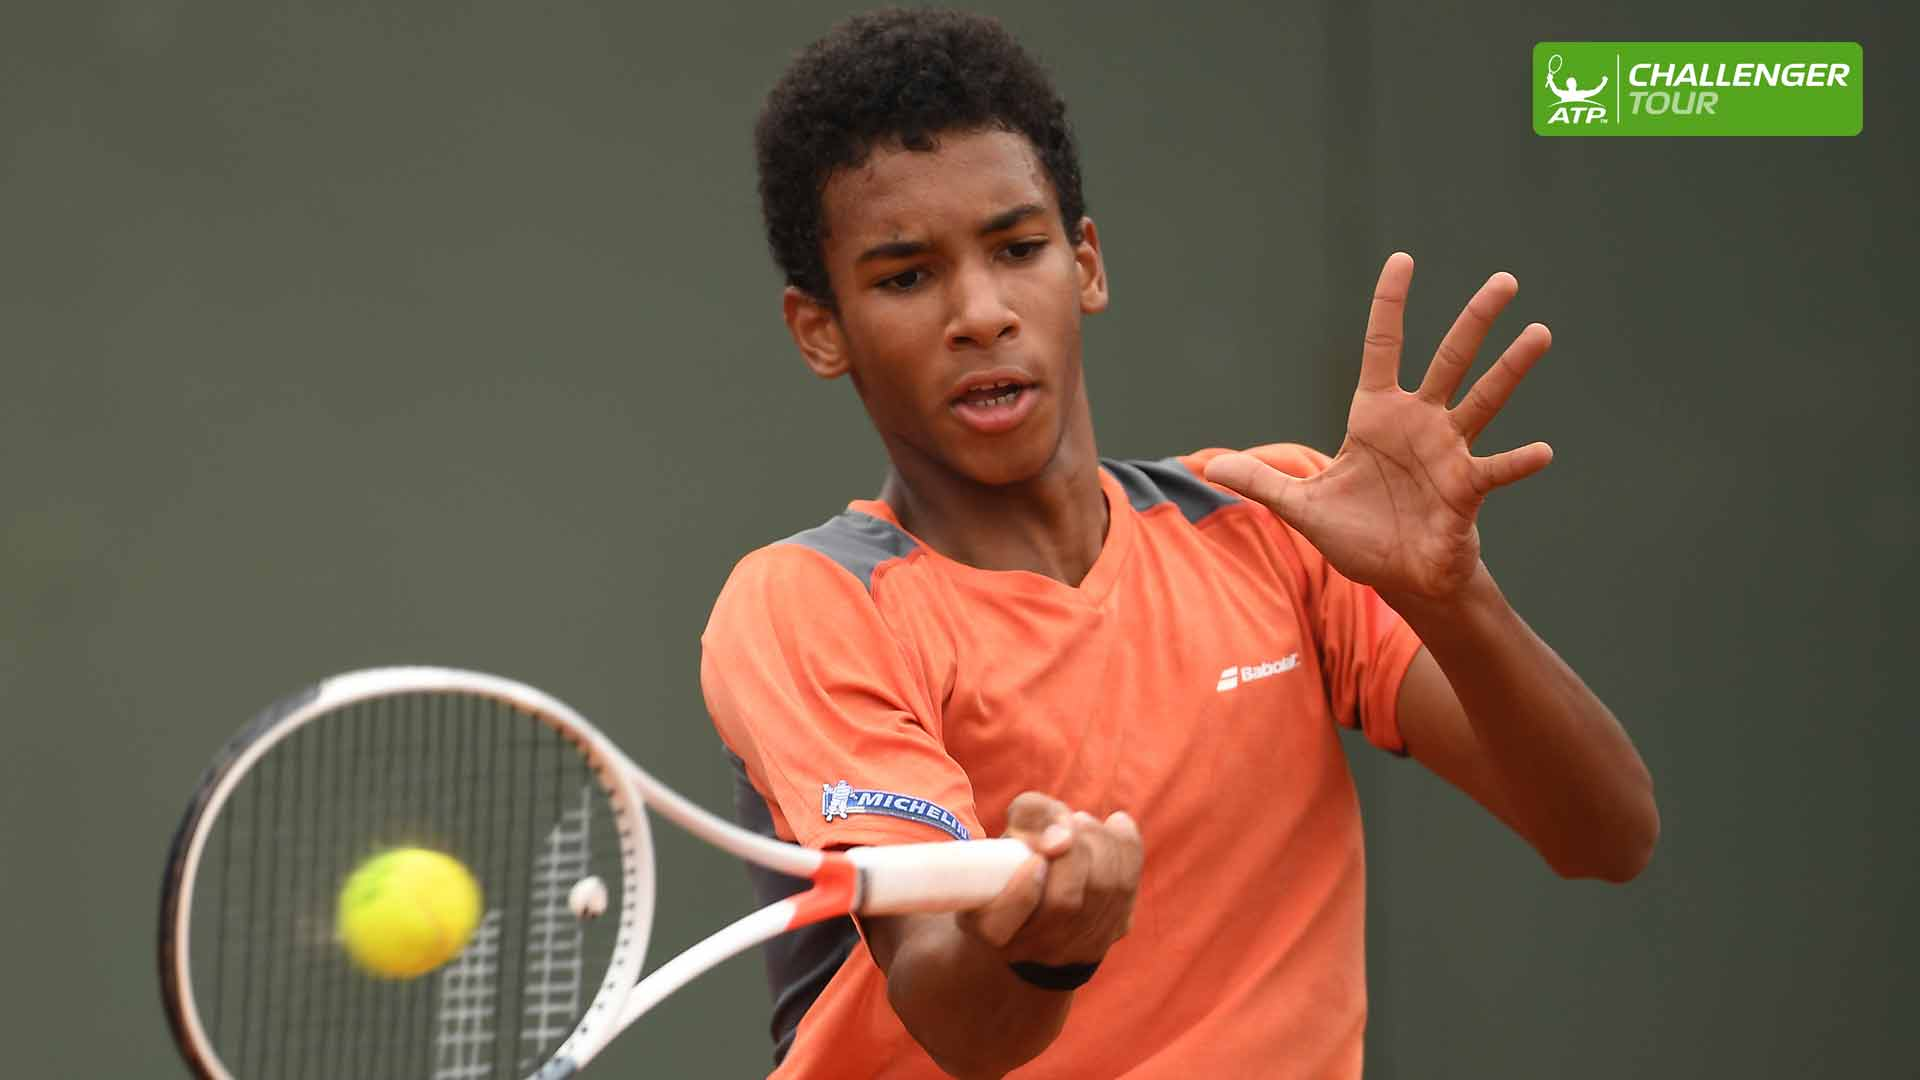 Felix Auger-Aliassime returns to the site of his ATP Challenger Tour breakthrough in Granby.